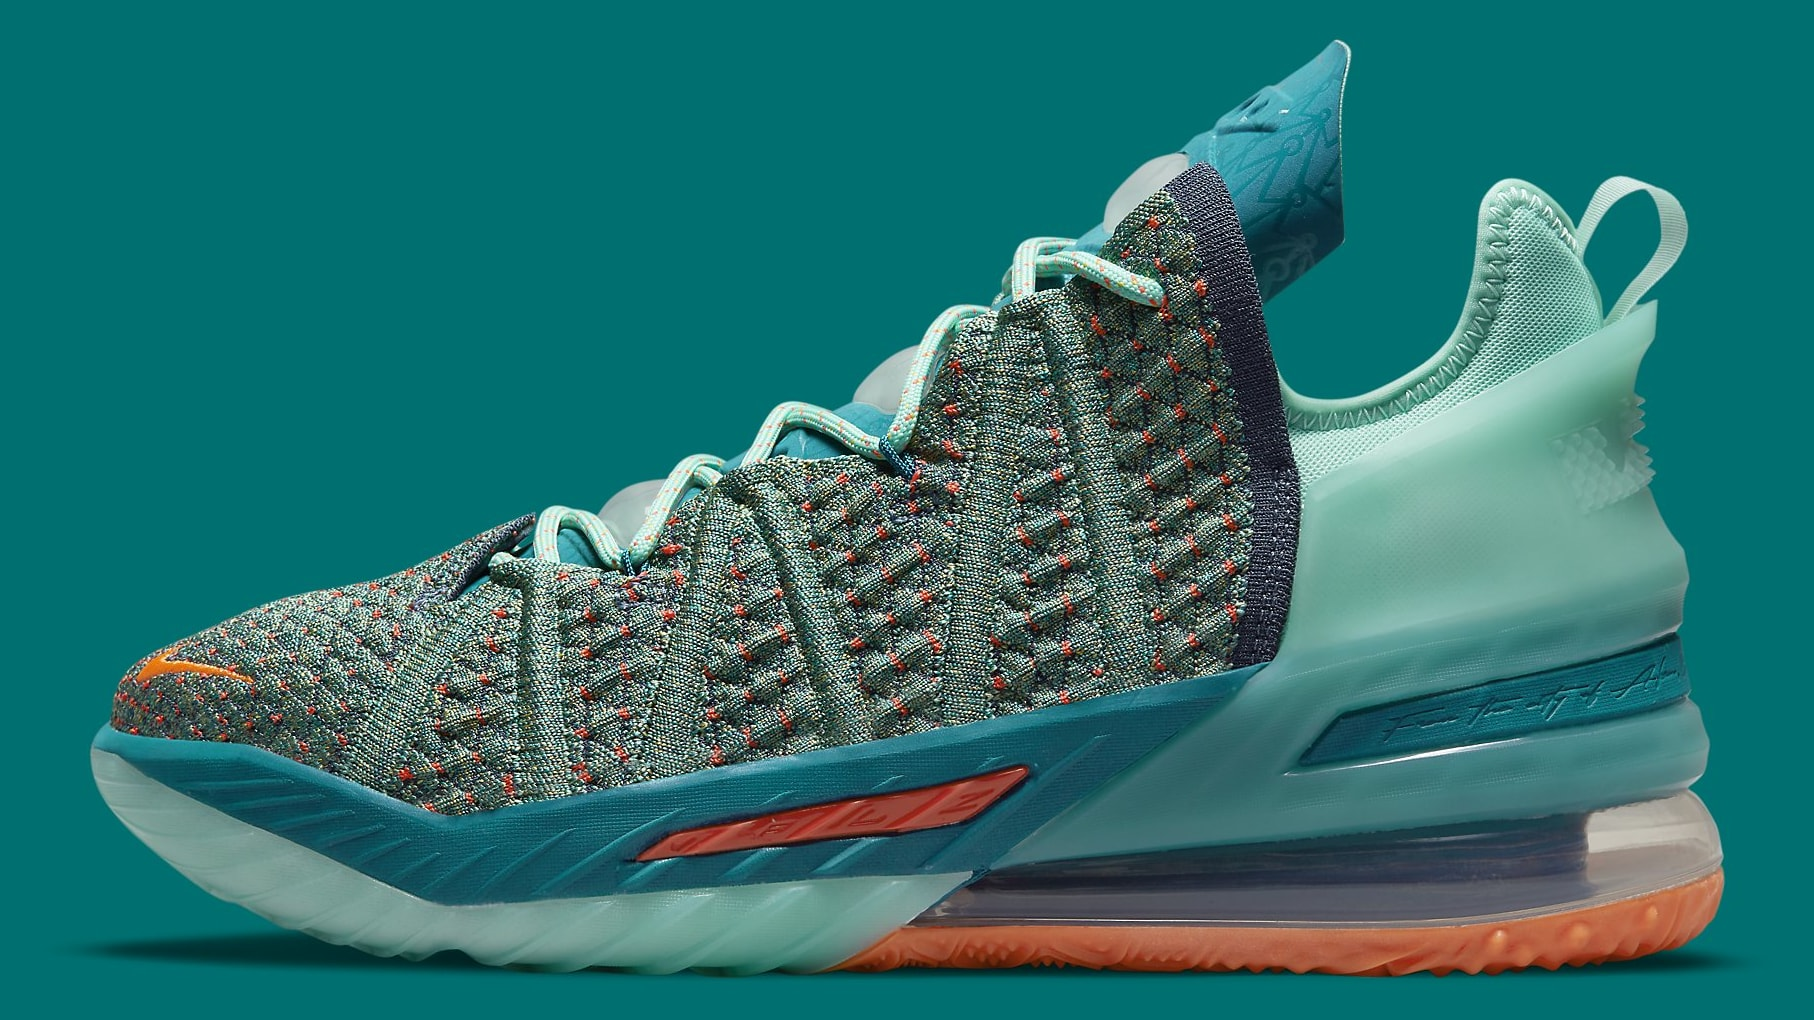 Nike LeBron 18 We Are Family Release Date CQ9283-300 Profile